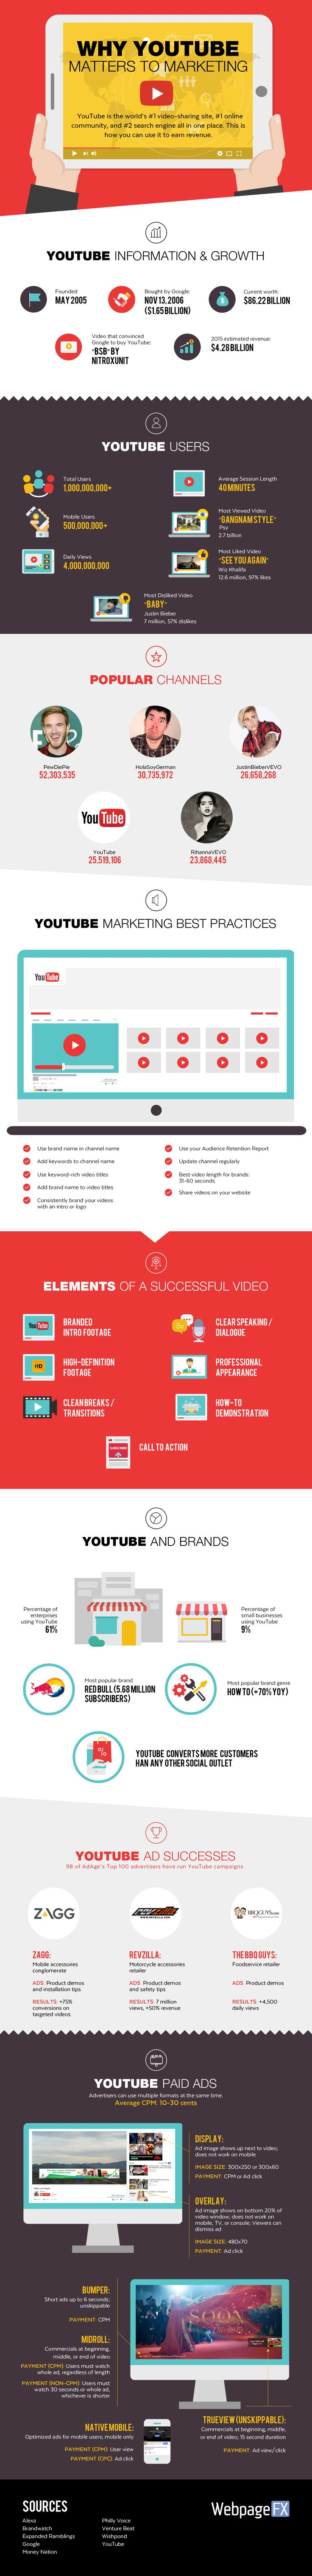 Why YouTube Matters to Marketing [Infographic] | Social Media Today